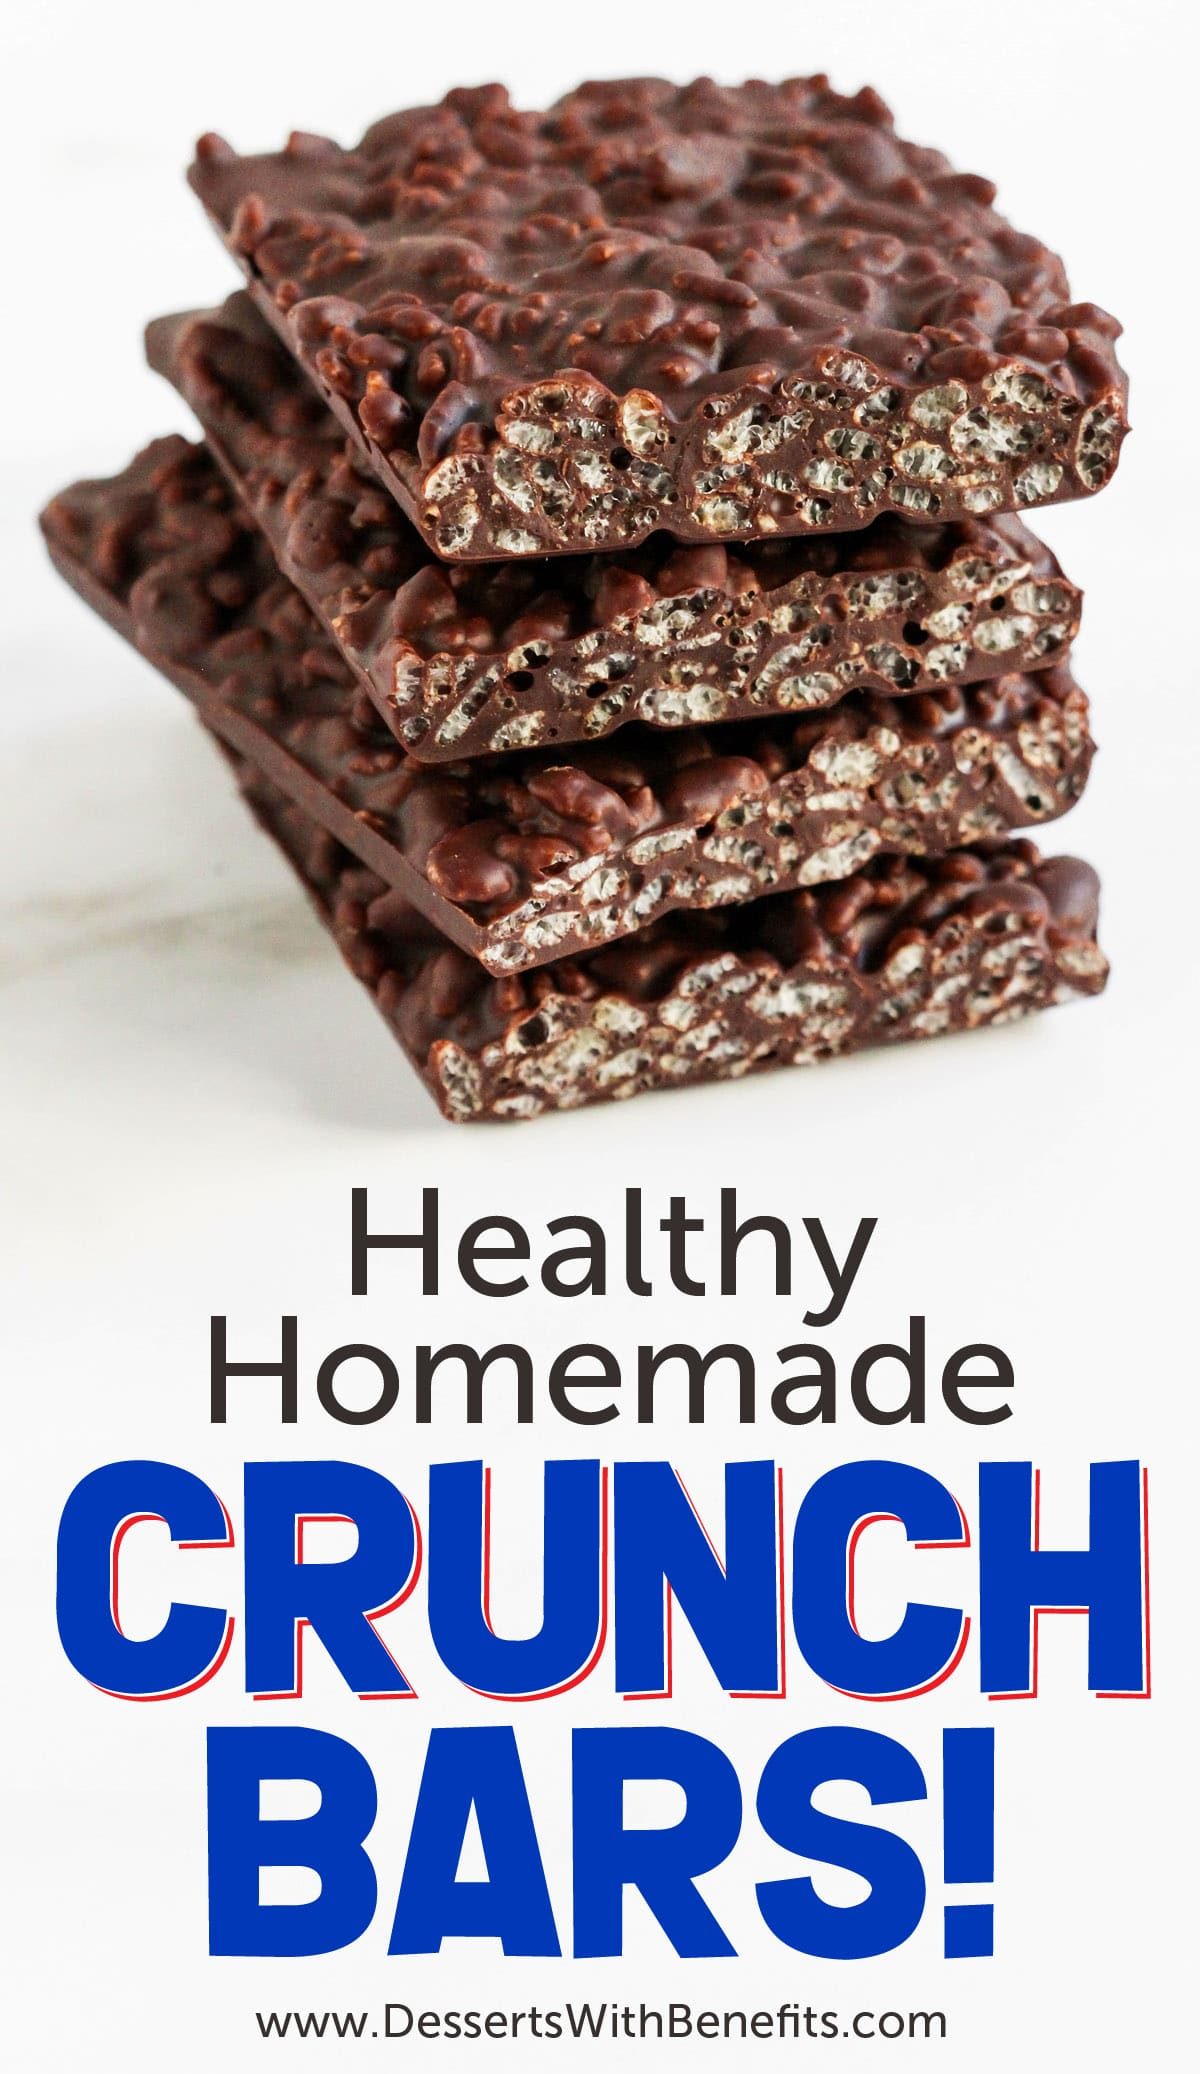 These easy 2-ingredient Homemade Crunch Bars taste JUST like the original, except they're way better (and healthier too)! Crunchy, crispy, chocolatey, and satisfying. You'd never know they're sugar free, and gluten free too! Perfect for Halloween, birthdays, surprise parties, movie theatre snacks, or a decadent treat just for you. #sugarfree #glutenfree #halloween #chocolate #homemade #candy #candybars #DIY